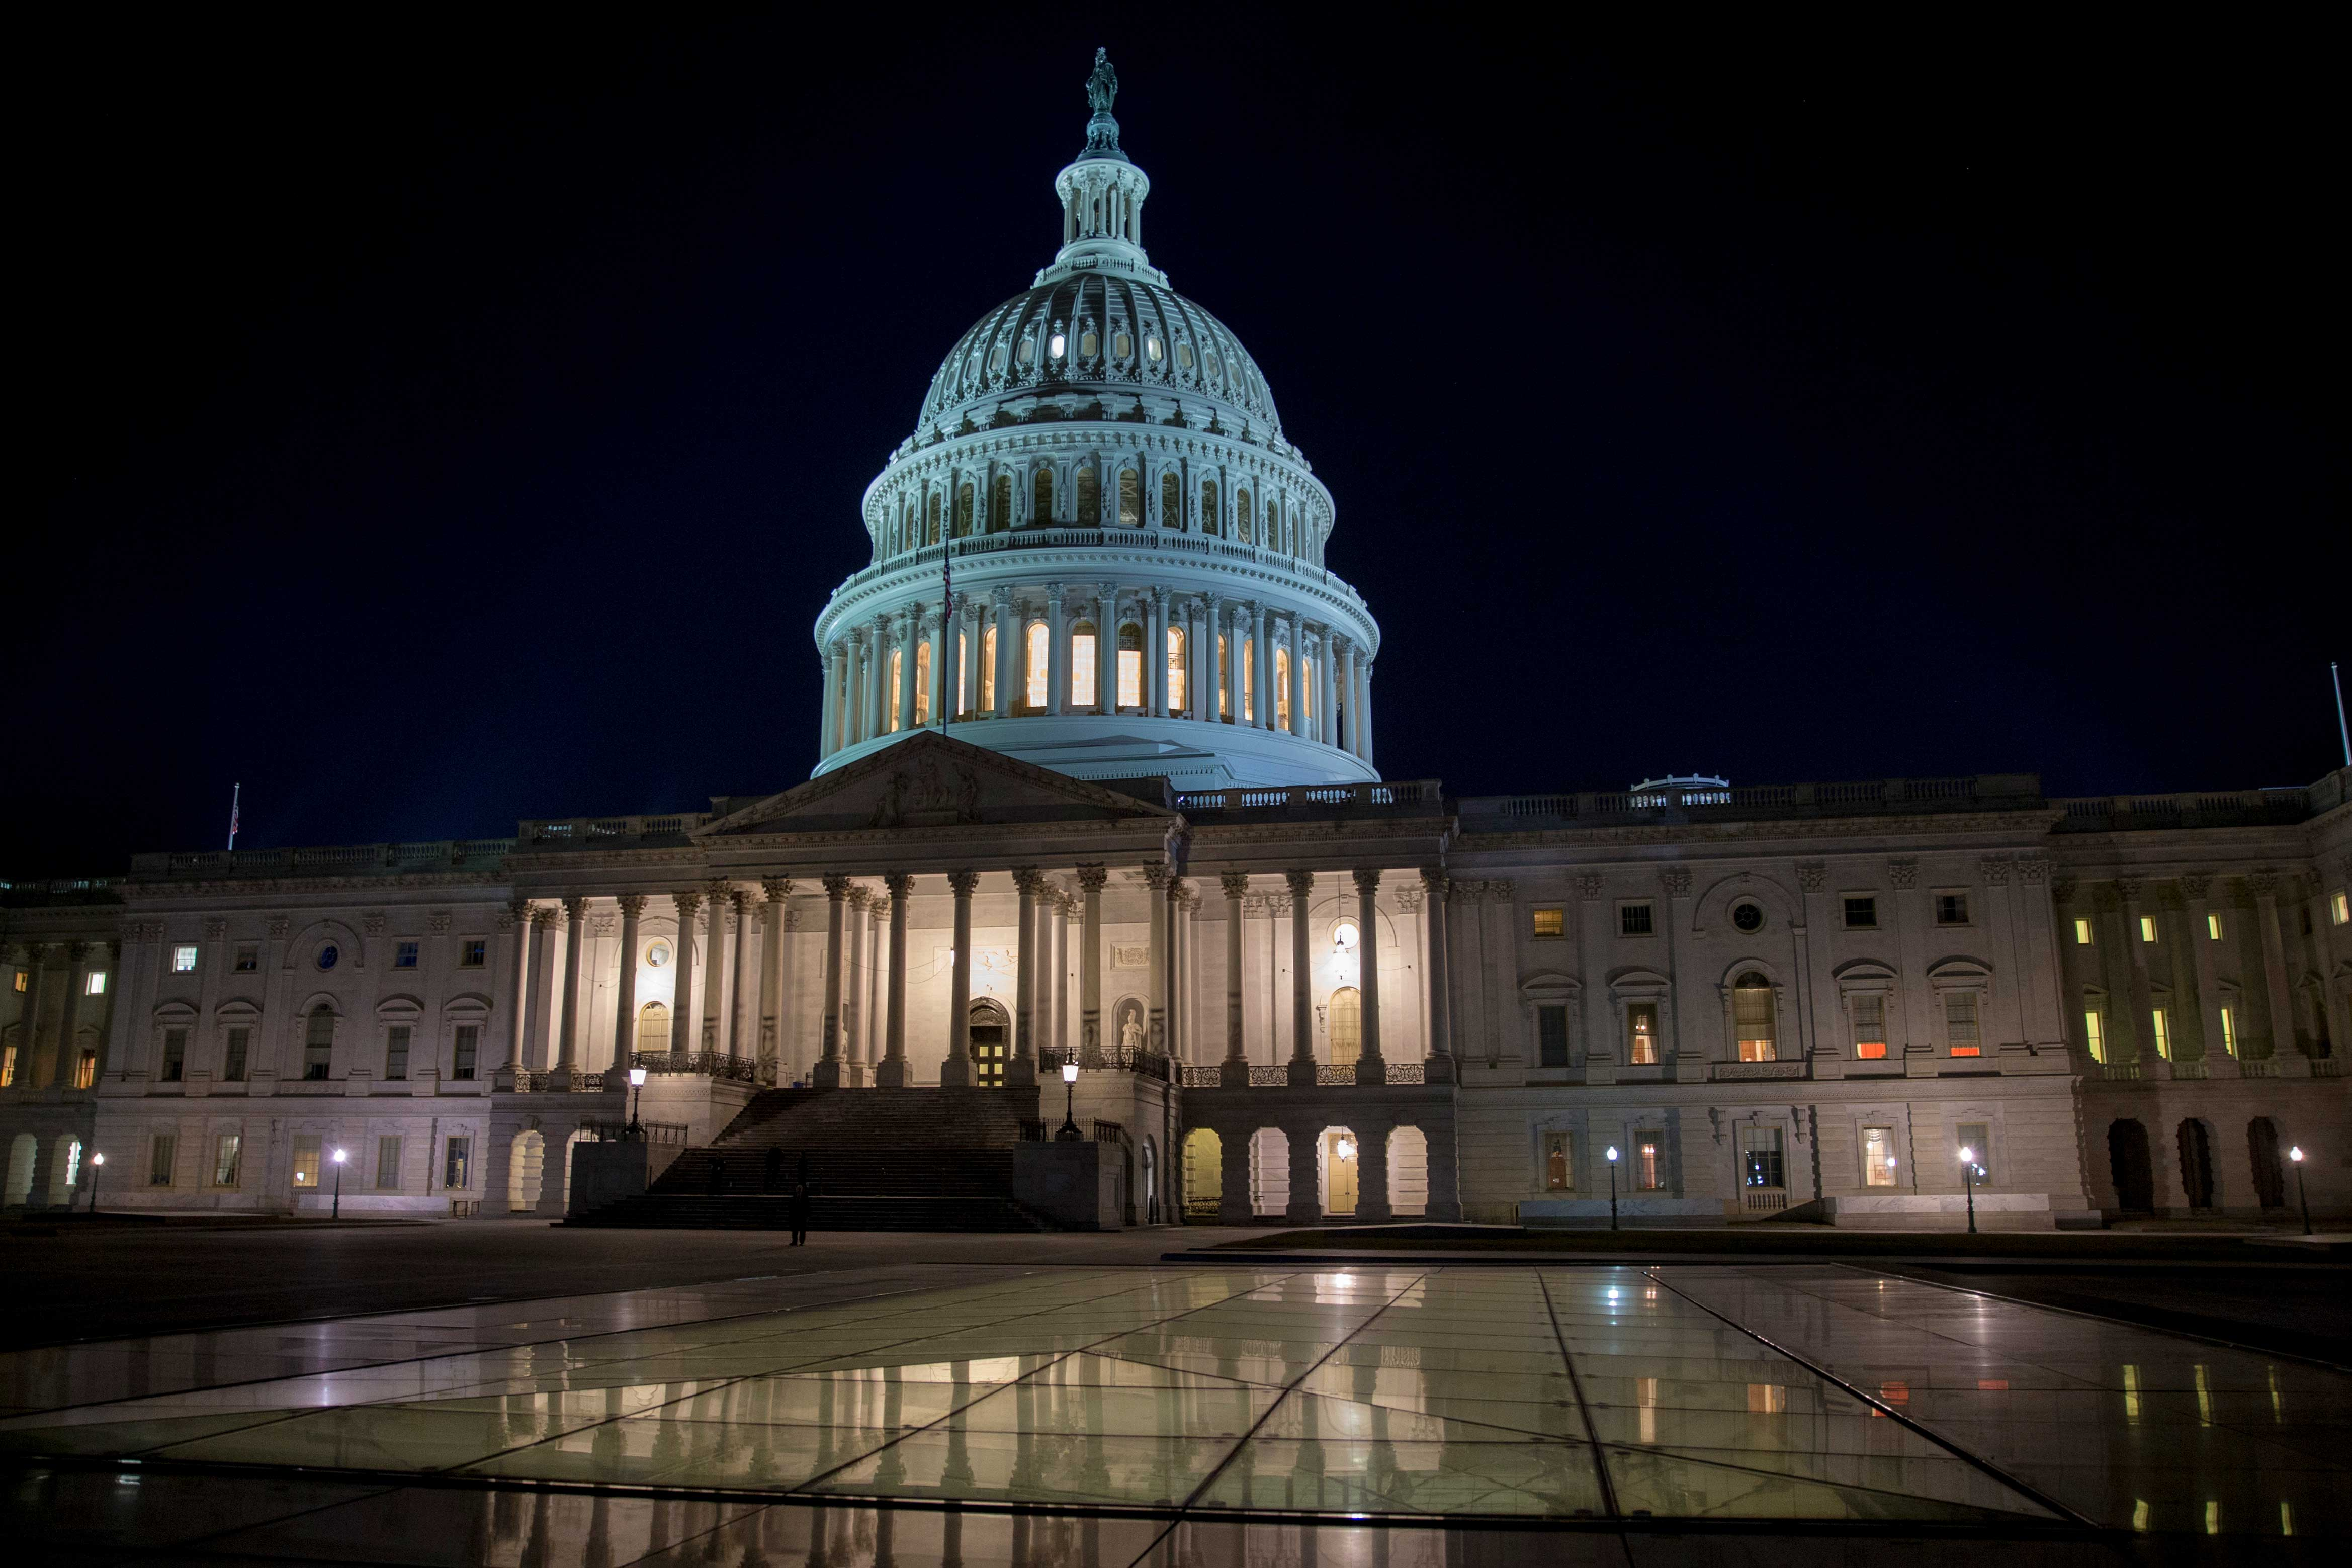 The exterior of the US Capitol building at night with its lights on.